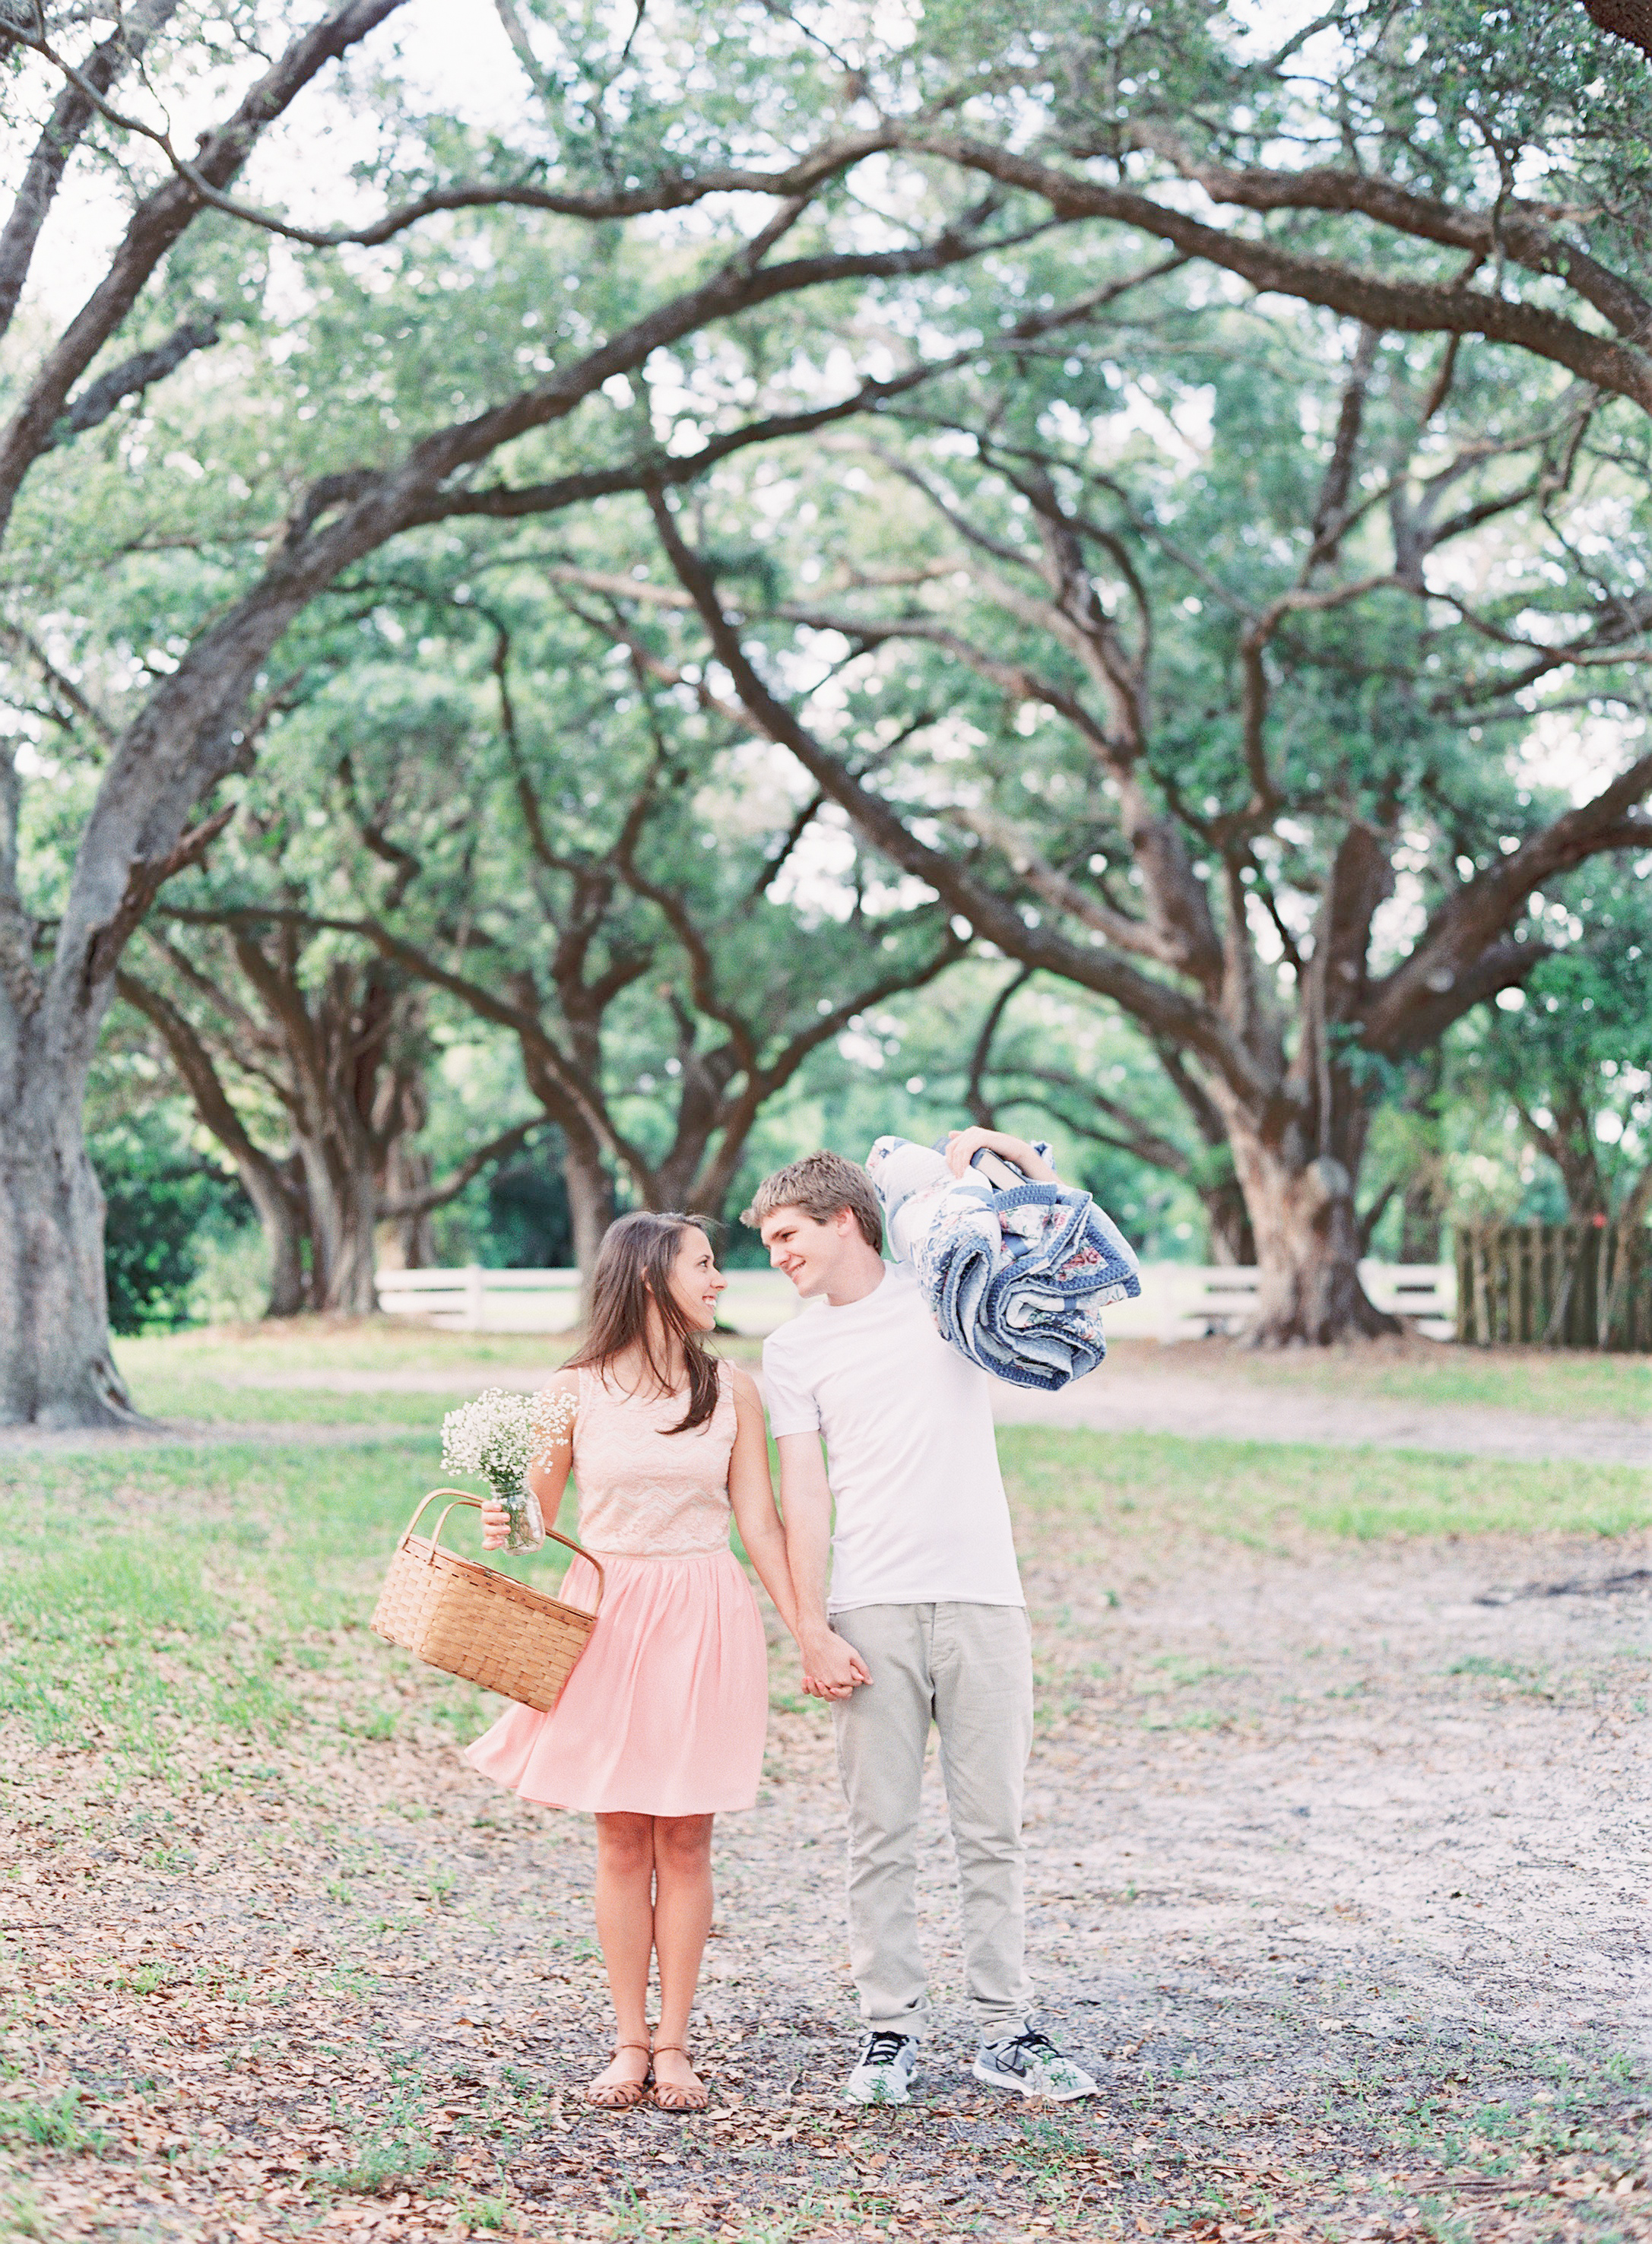 Michelle-March-Photography-Wedding-Engagement-Miami-South-Florida-Photographer-17